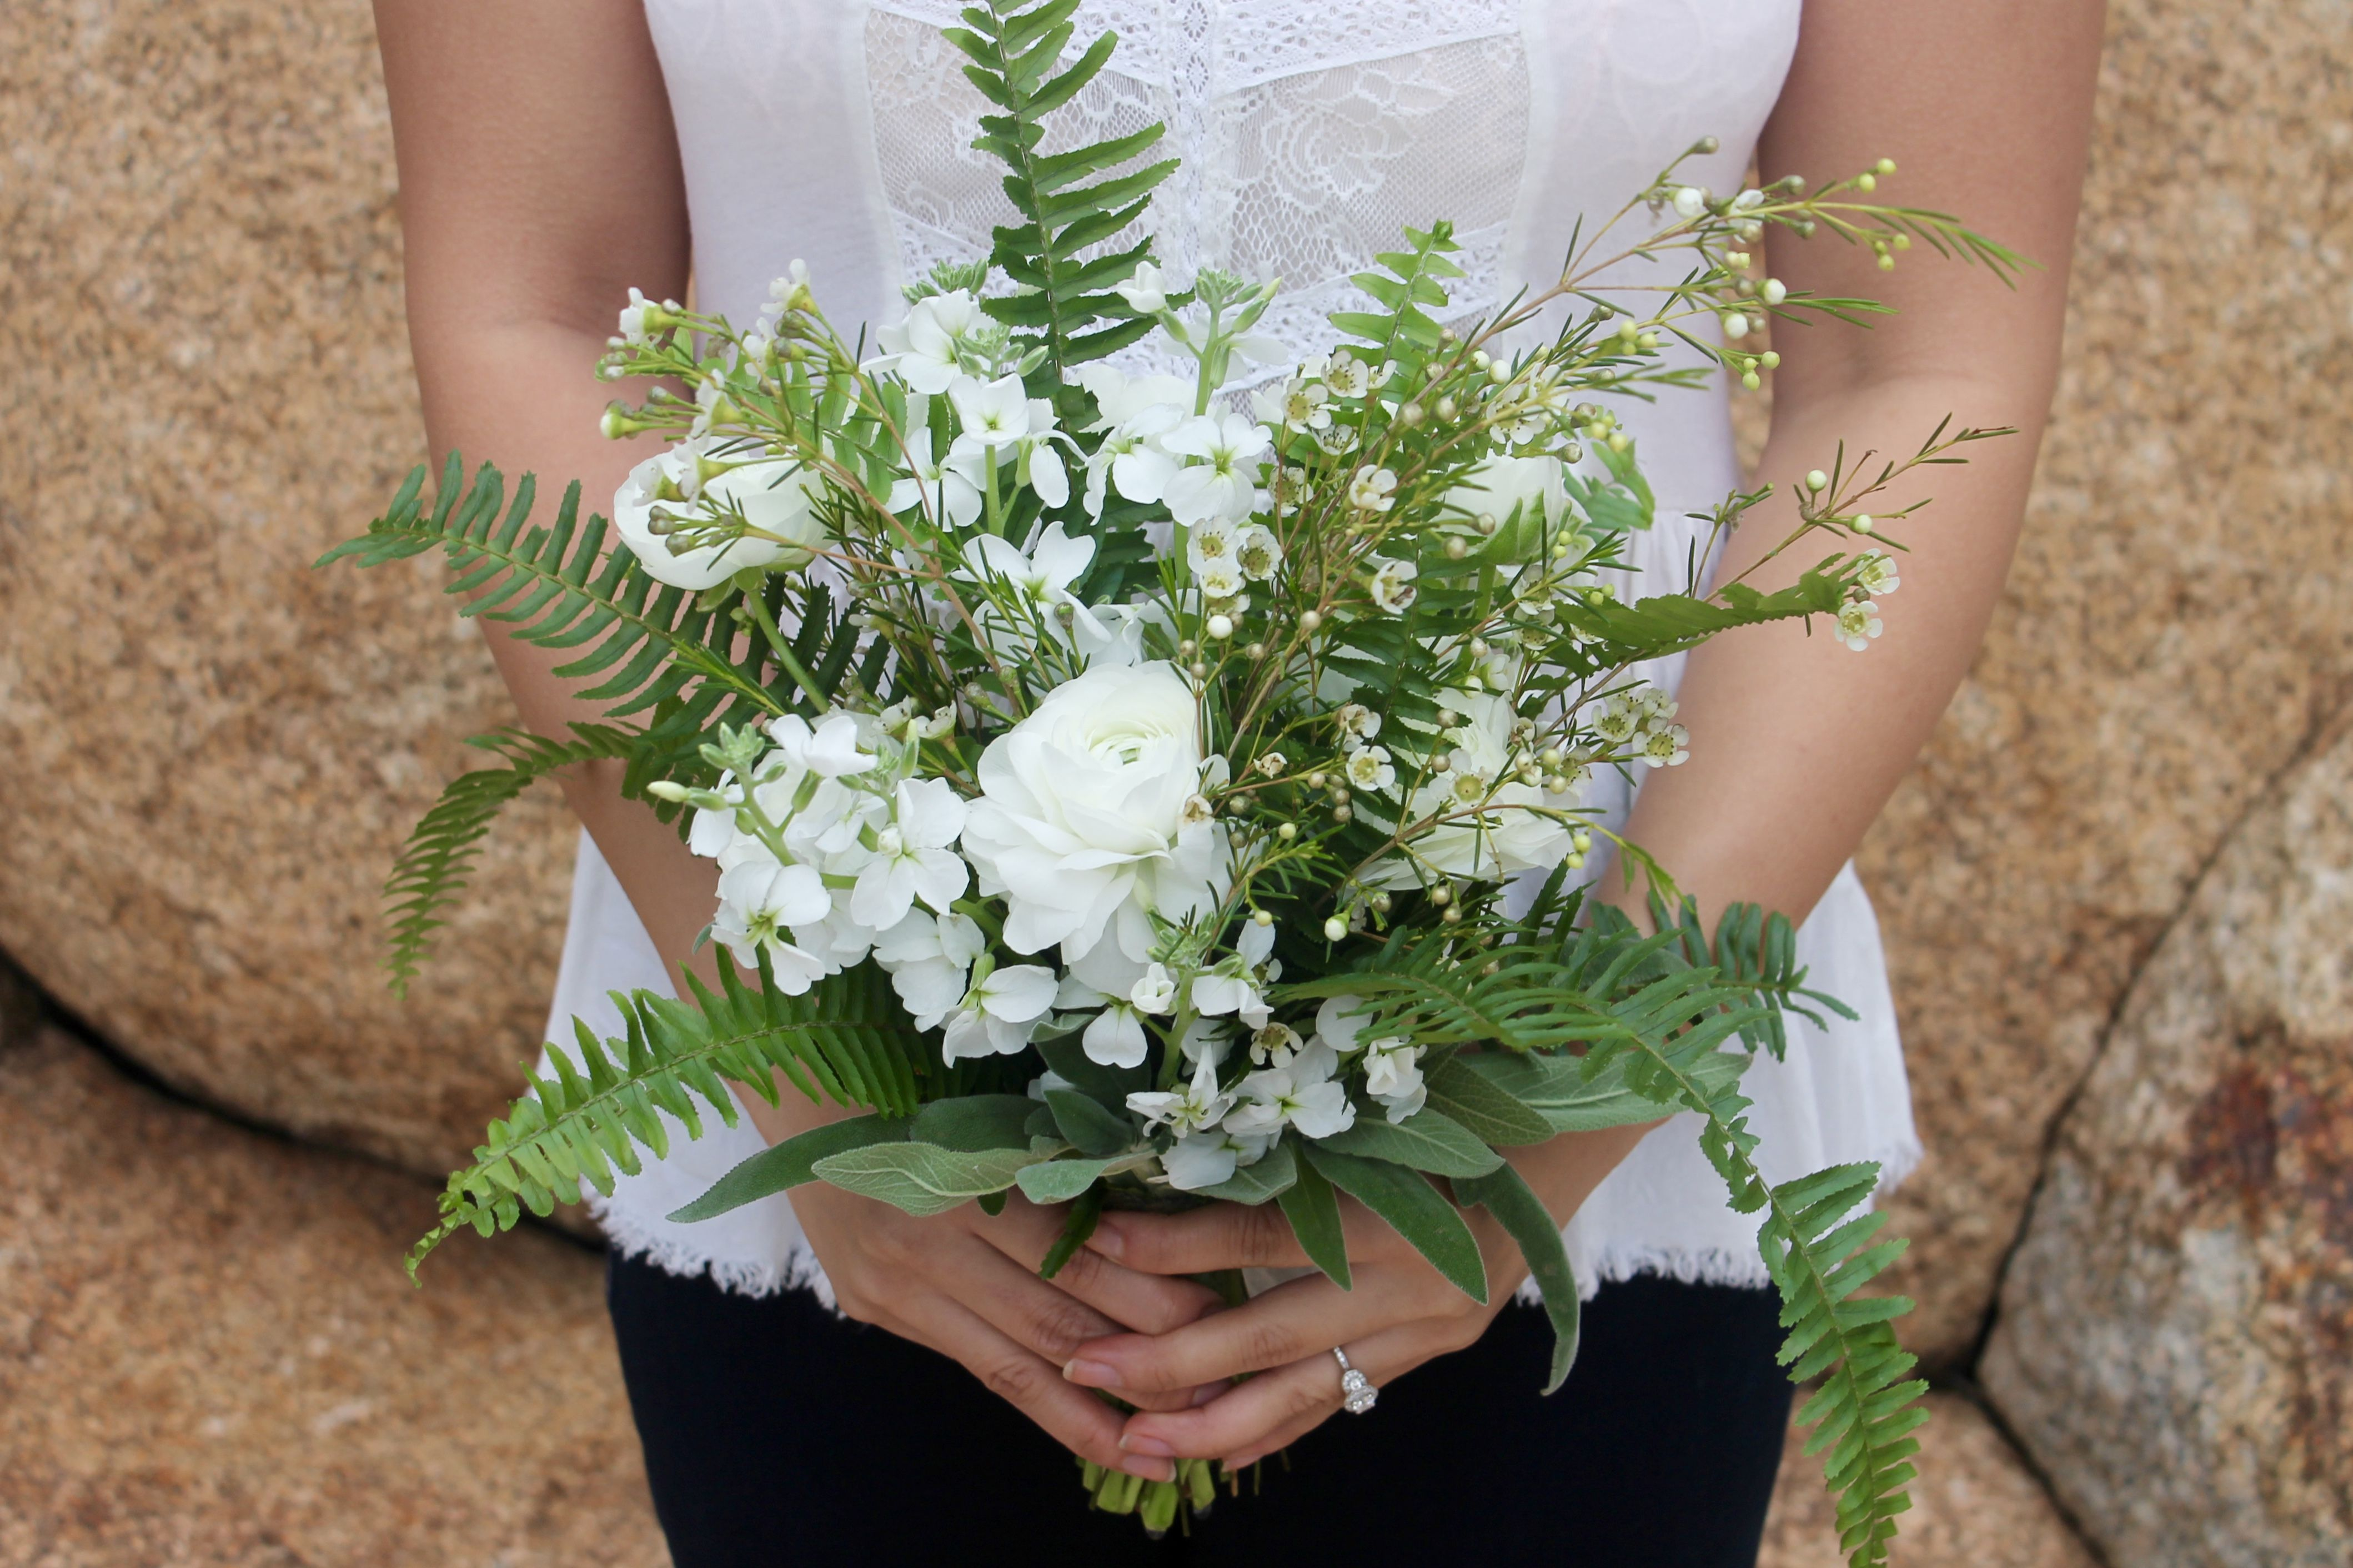 Bridal Bouquet Ingredients Ranunculus Sword Fern Wax Flower Wildflowers And Sage Wax Flowers Wild Flowers Bridal Bouquet